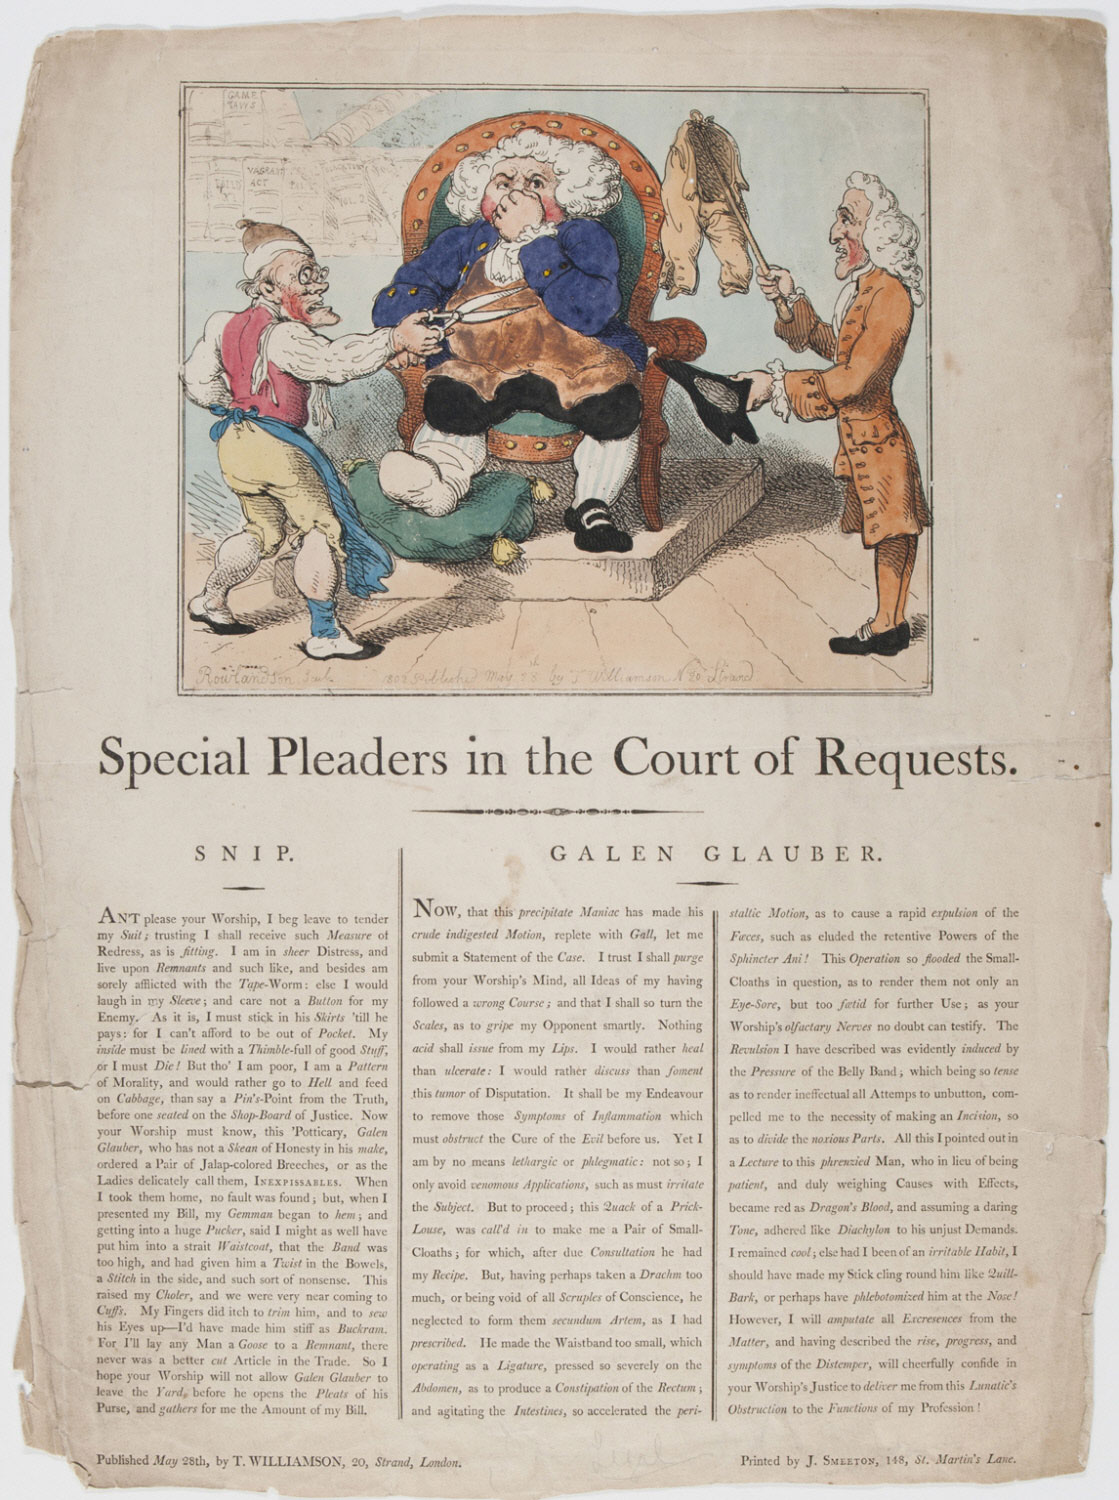 Special Pleaders in the Court of Requests